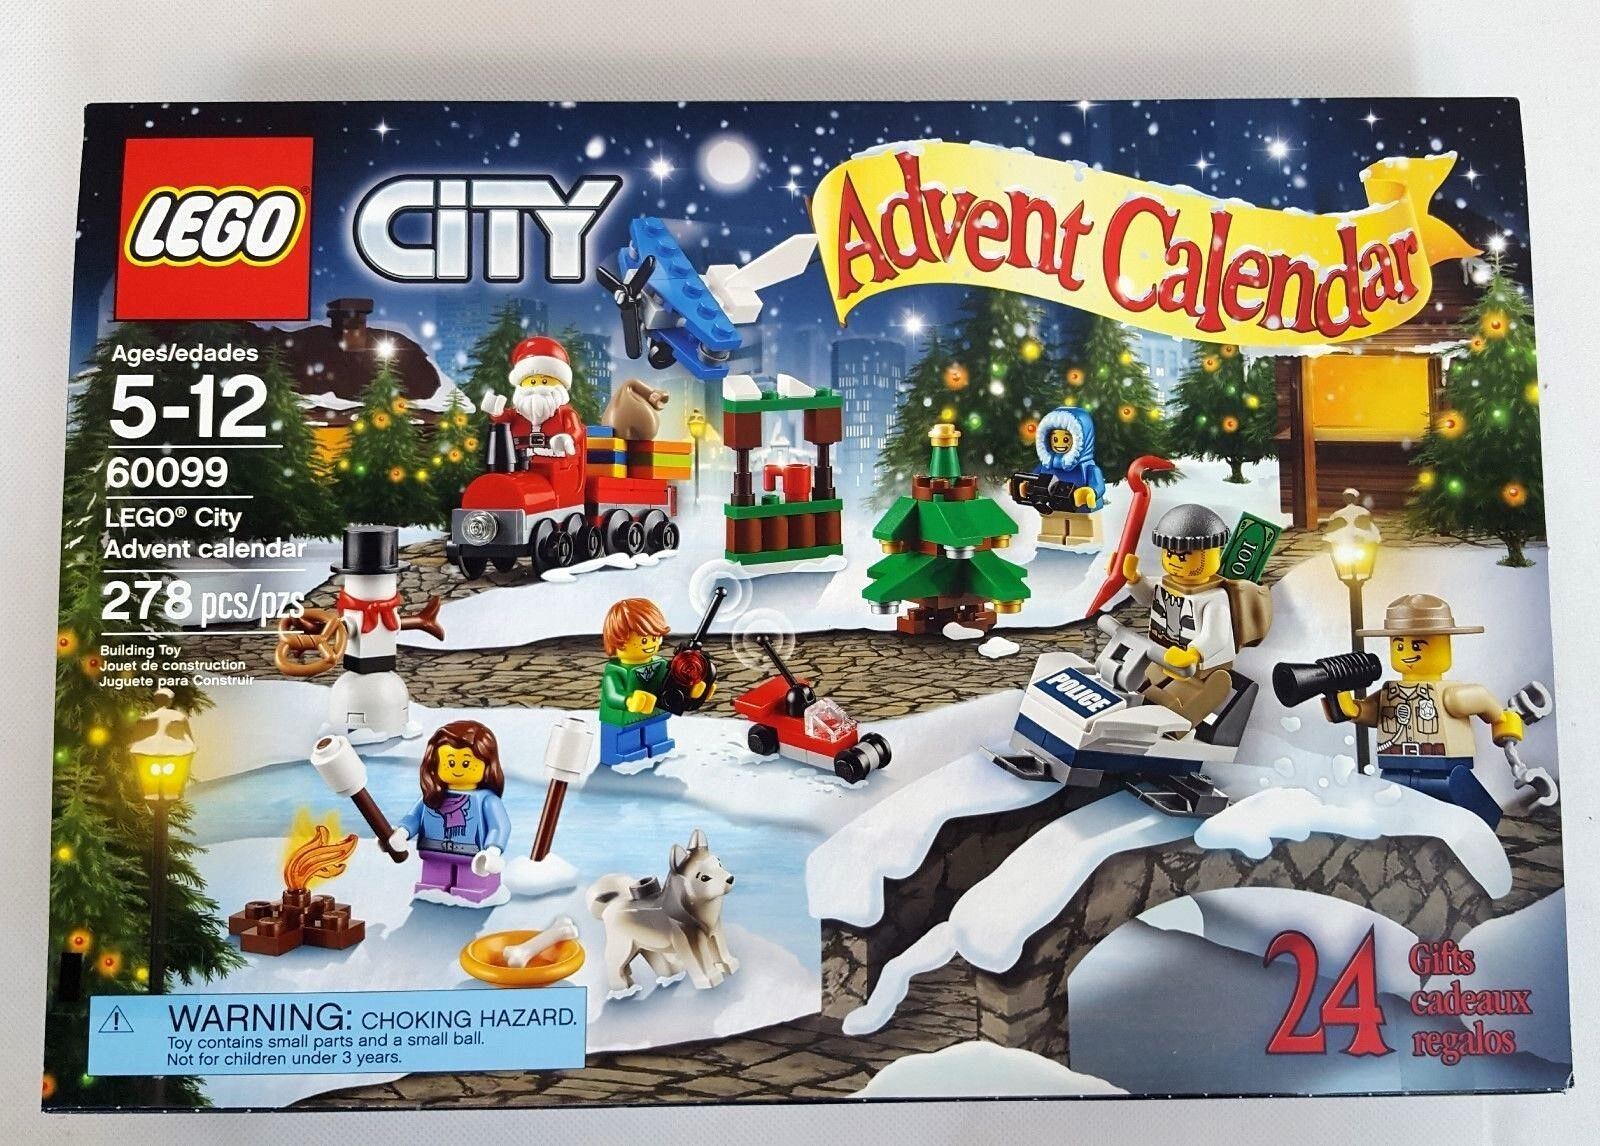 LEGO CITY 2015 Christmas ADVENT CALENDAR Building Kit NEW SEALED in BOX